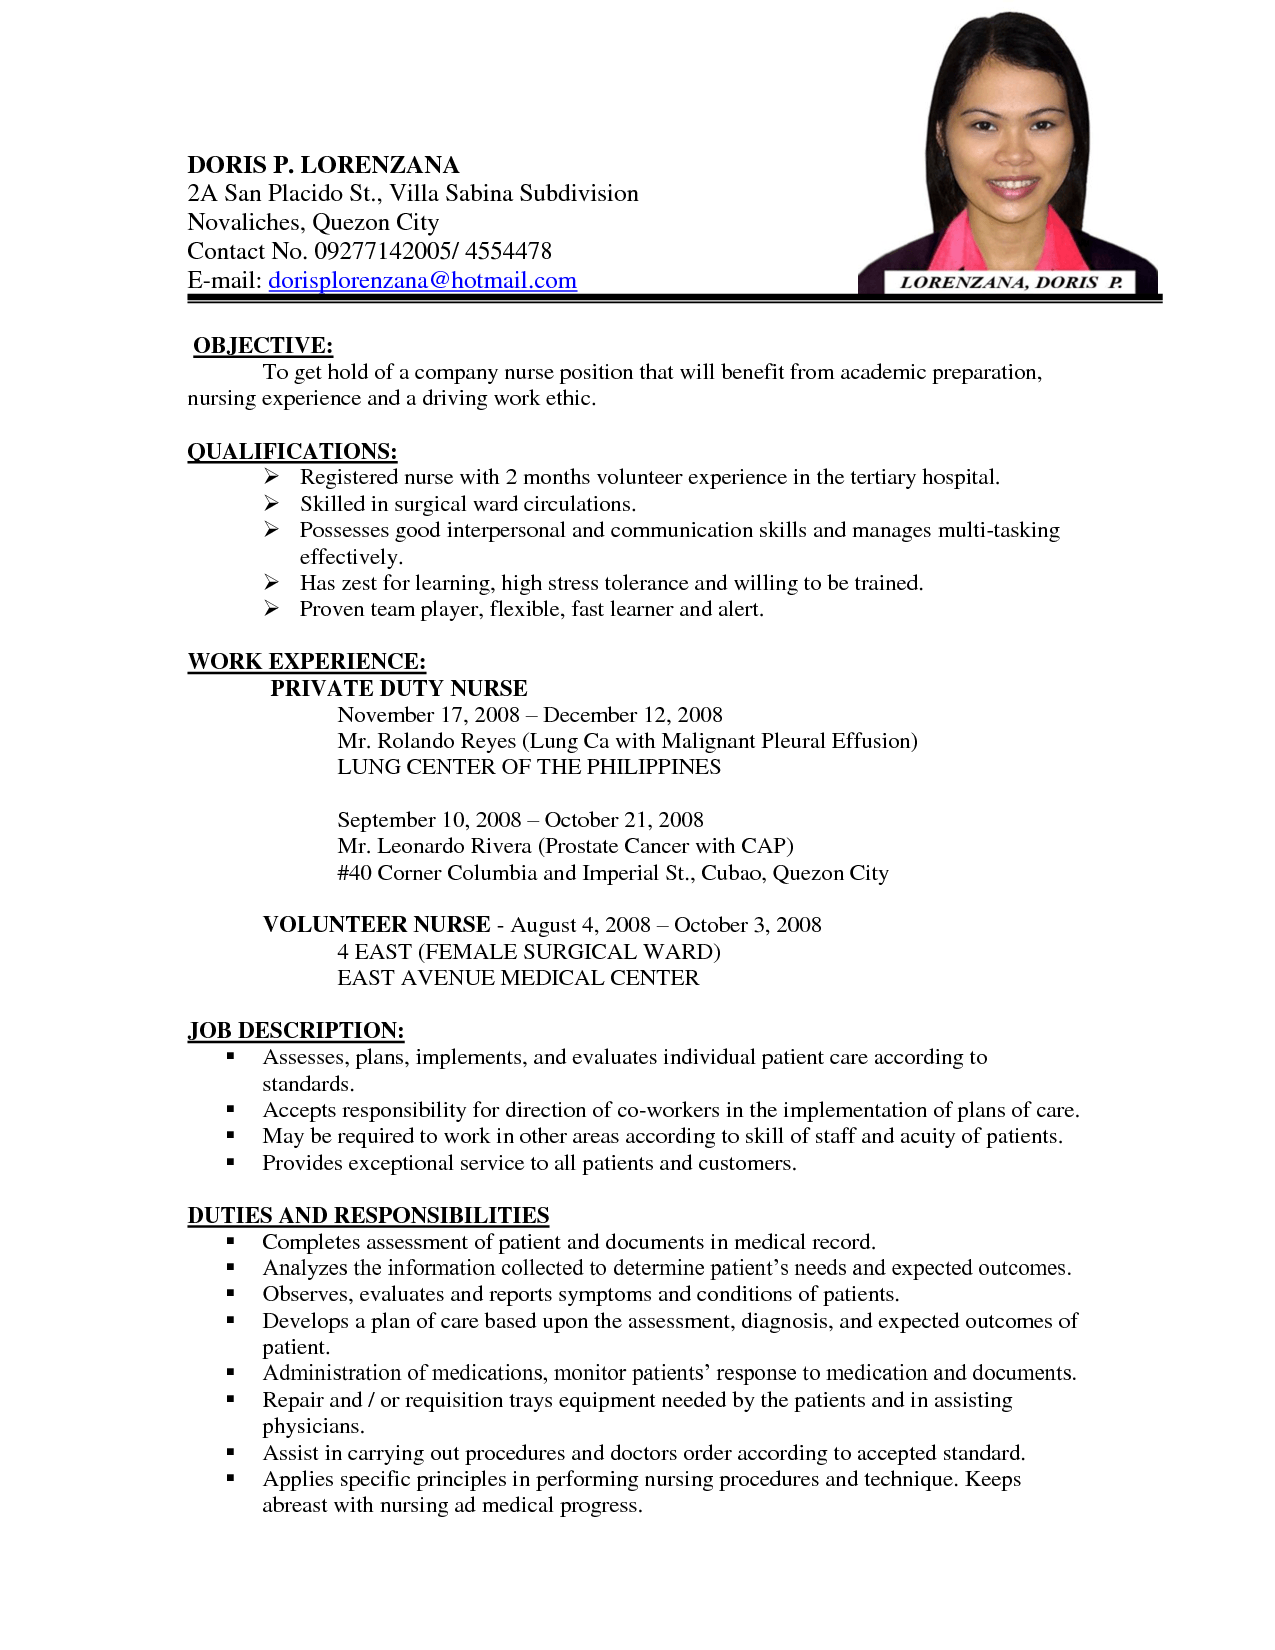 Image result for curriculum vitae format for a nurse | Card ...